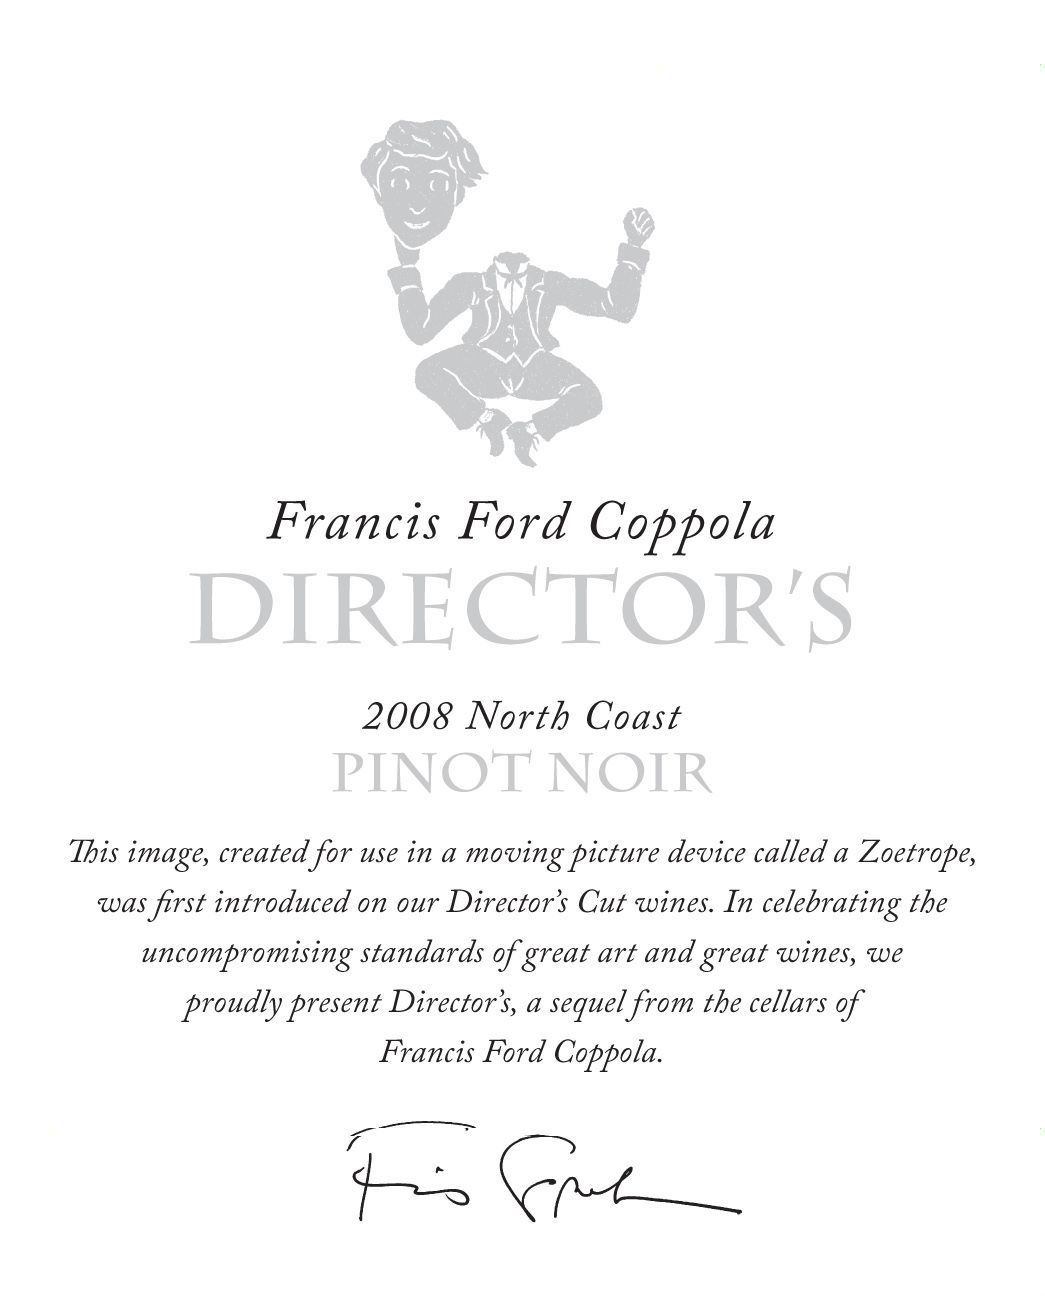 Francis Ford Coppola North Coast Director's Pinot Noir 2008 Front Label